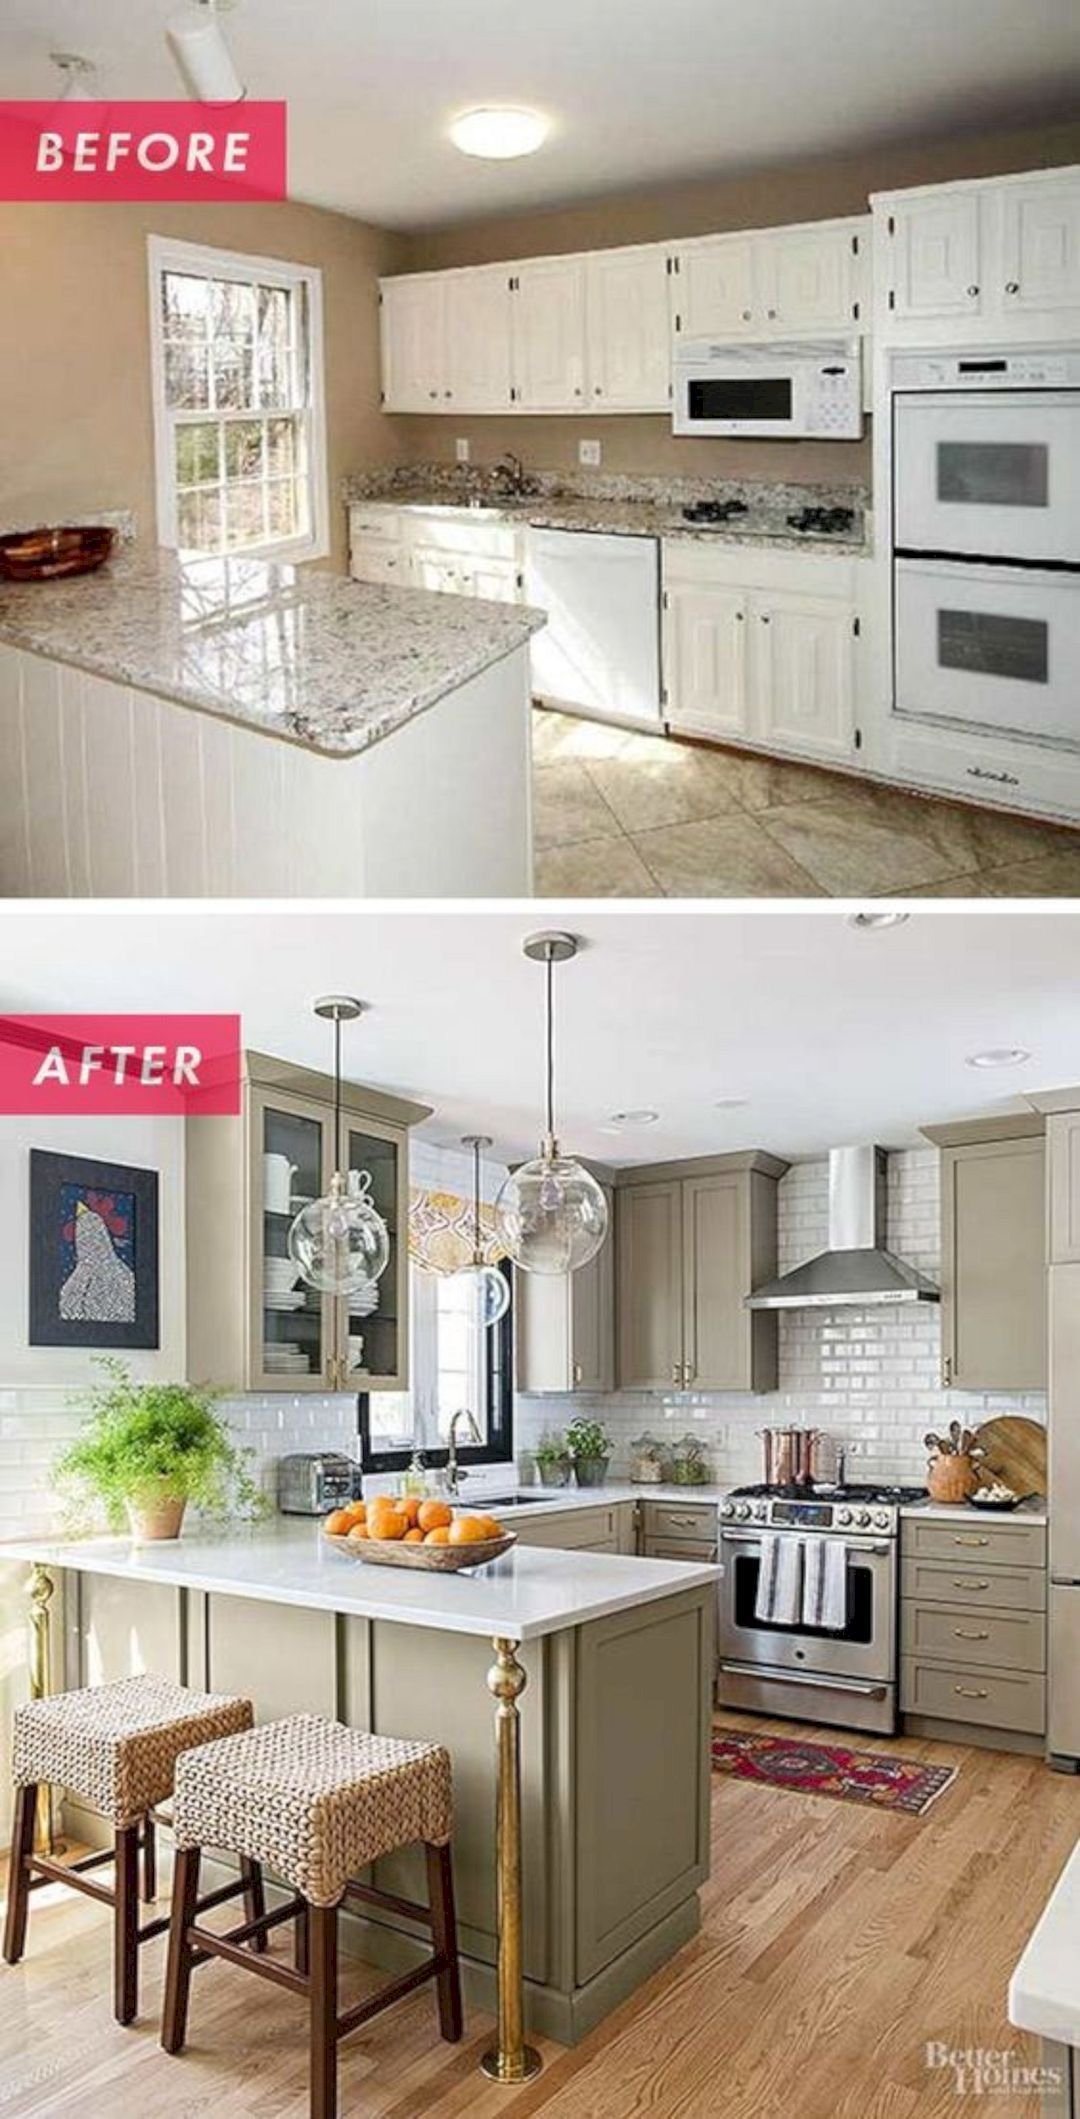 15 Clever Renovation Ideas to Update Your Small Kitchen | Small ...